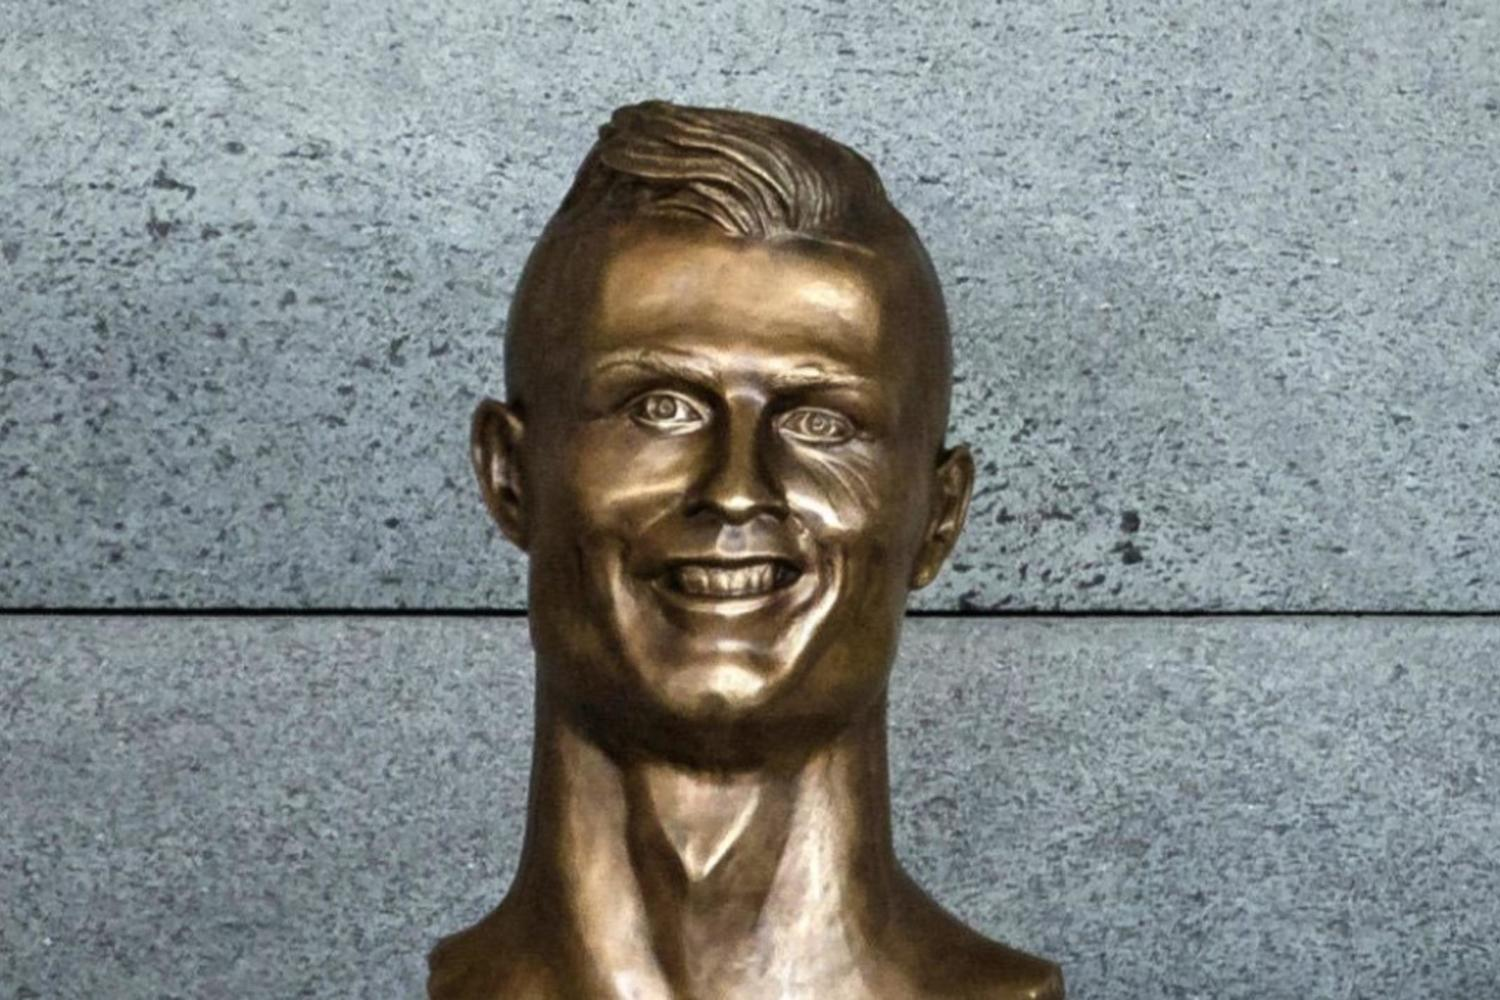 brilliantly awful Ronaldo statue in Madeira